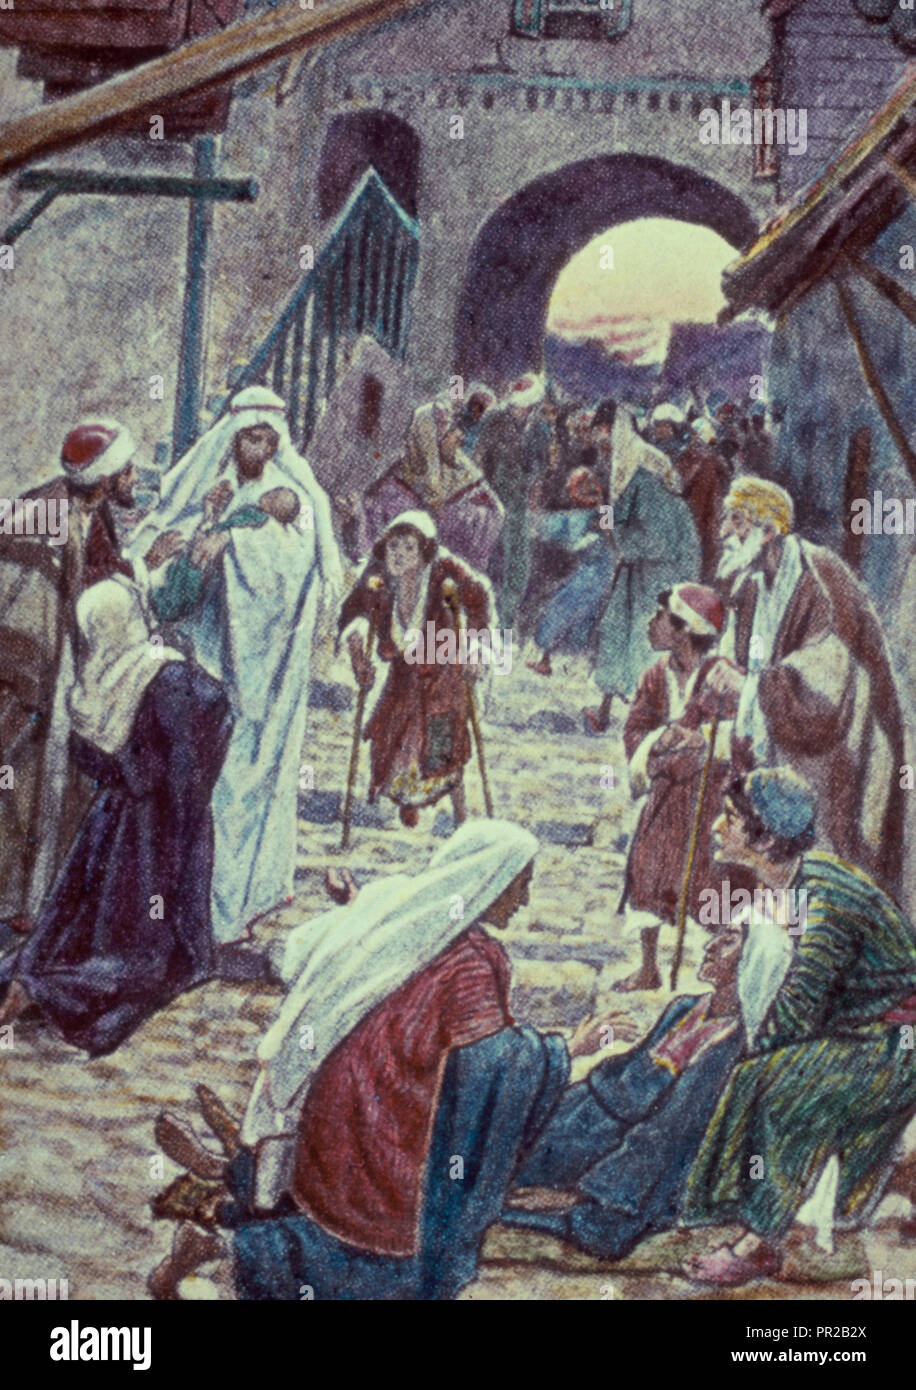 Mark 121,22;32-34. The Sabbath being ended, the people of Capernaum bring unto Him many afflicted with divers diseases - Stock Image